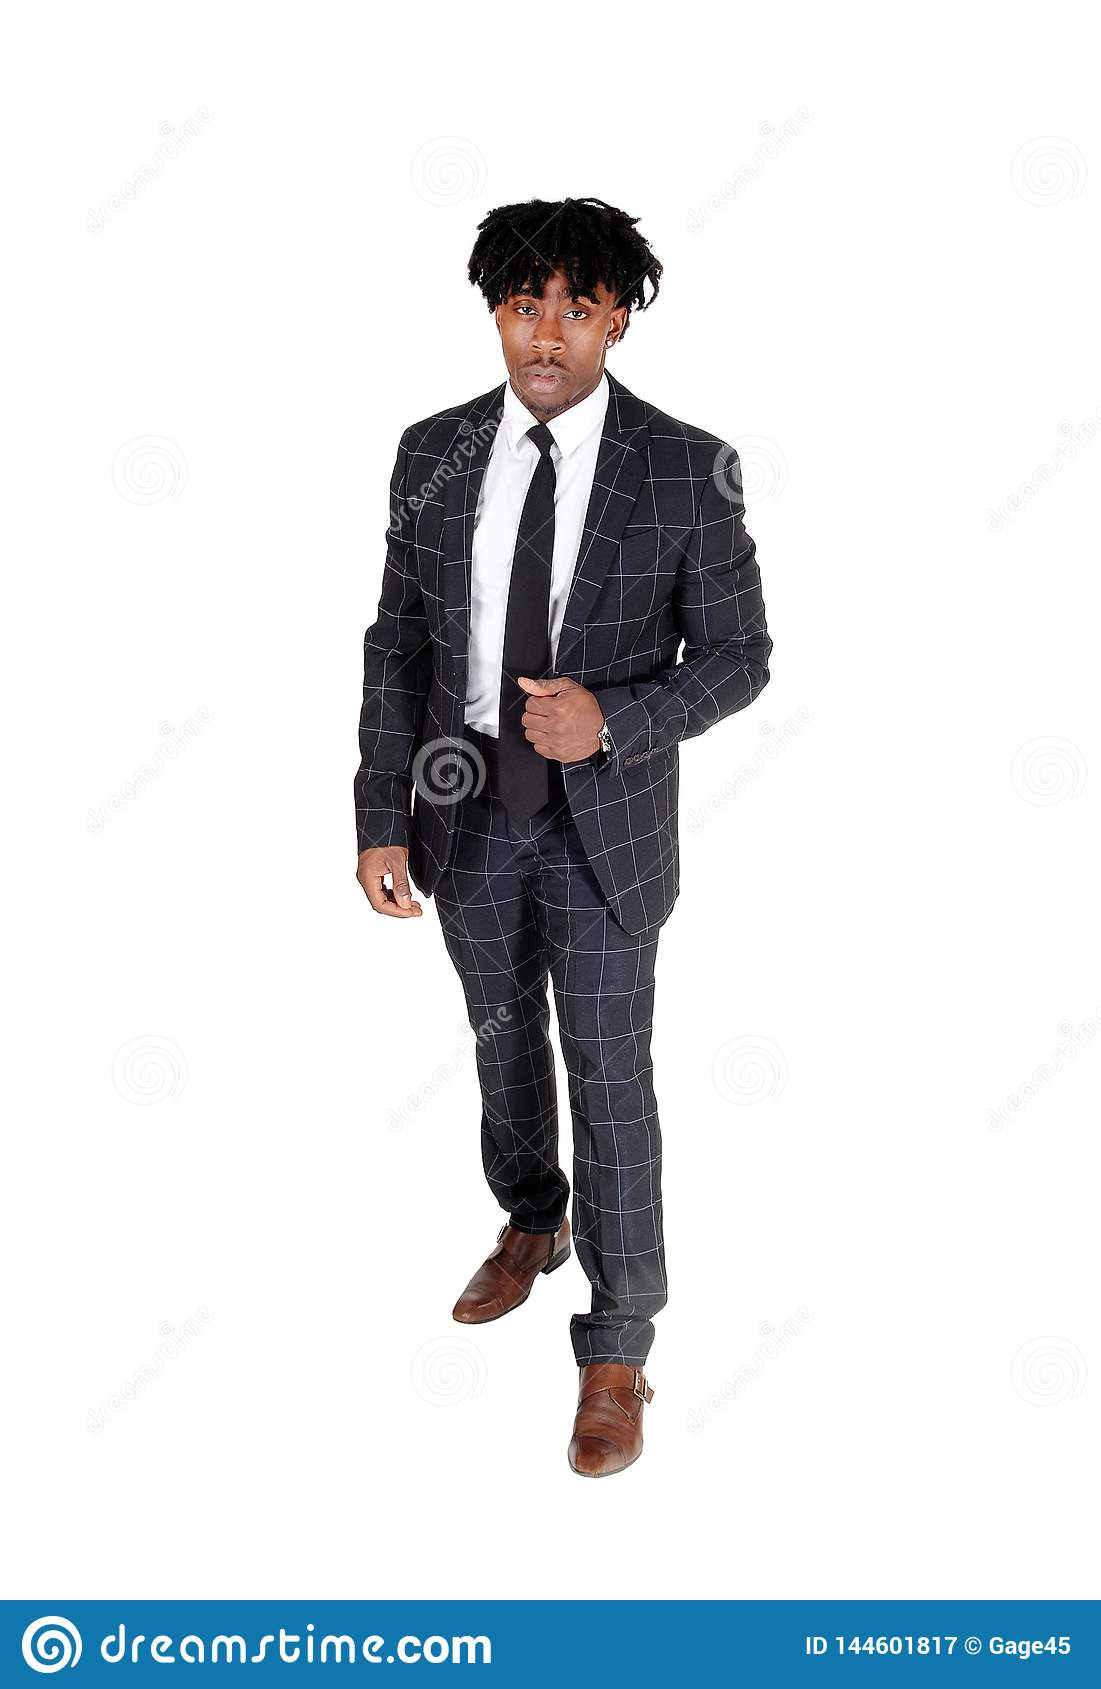 Black man in a dark suit standing in the studio with fussy black hair